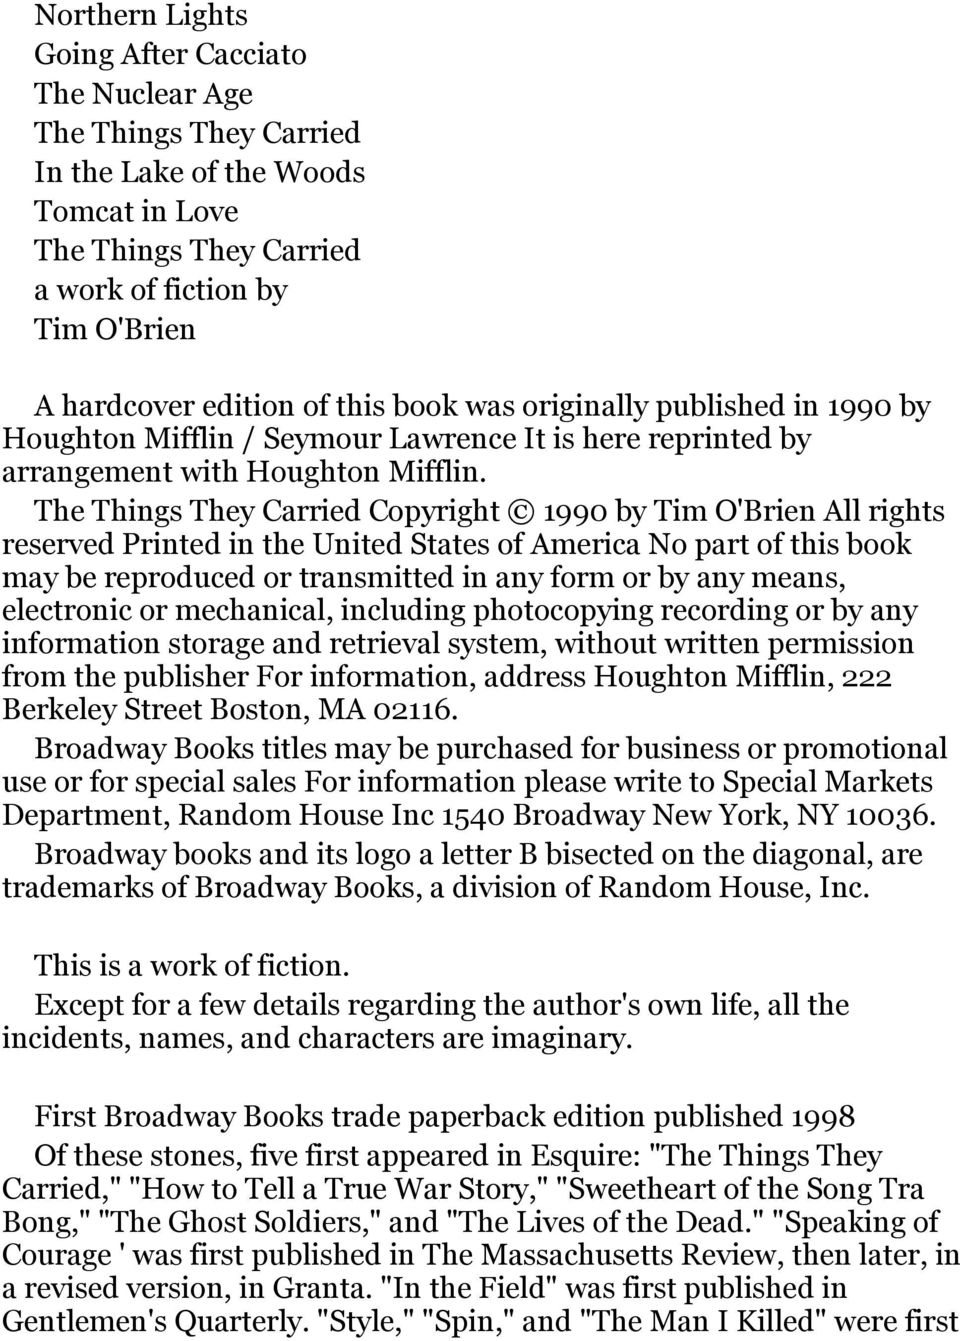 The Things They Carried Copyright 1990 by Tim O'Brien All rights reserved Printed in the United States of America No part of this book may be reproduced or transmitted in any form or by any means,